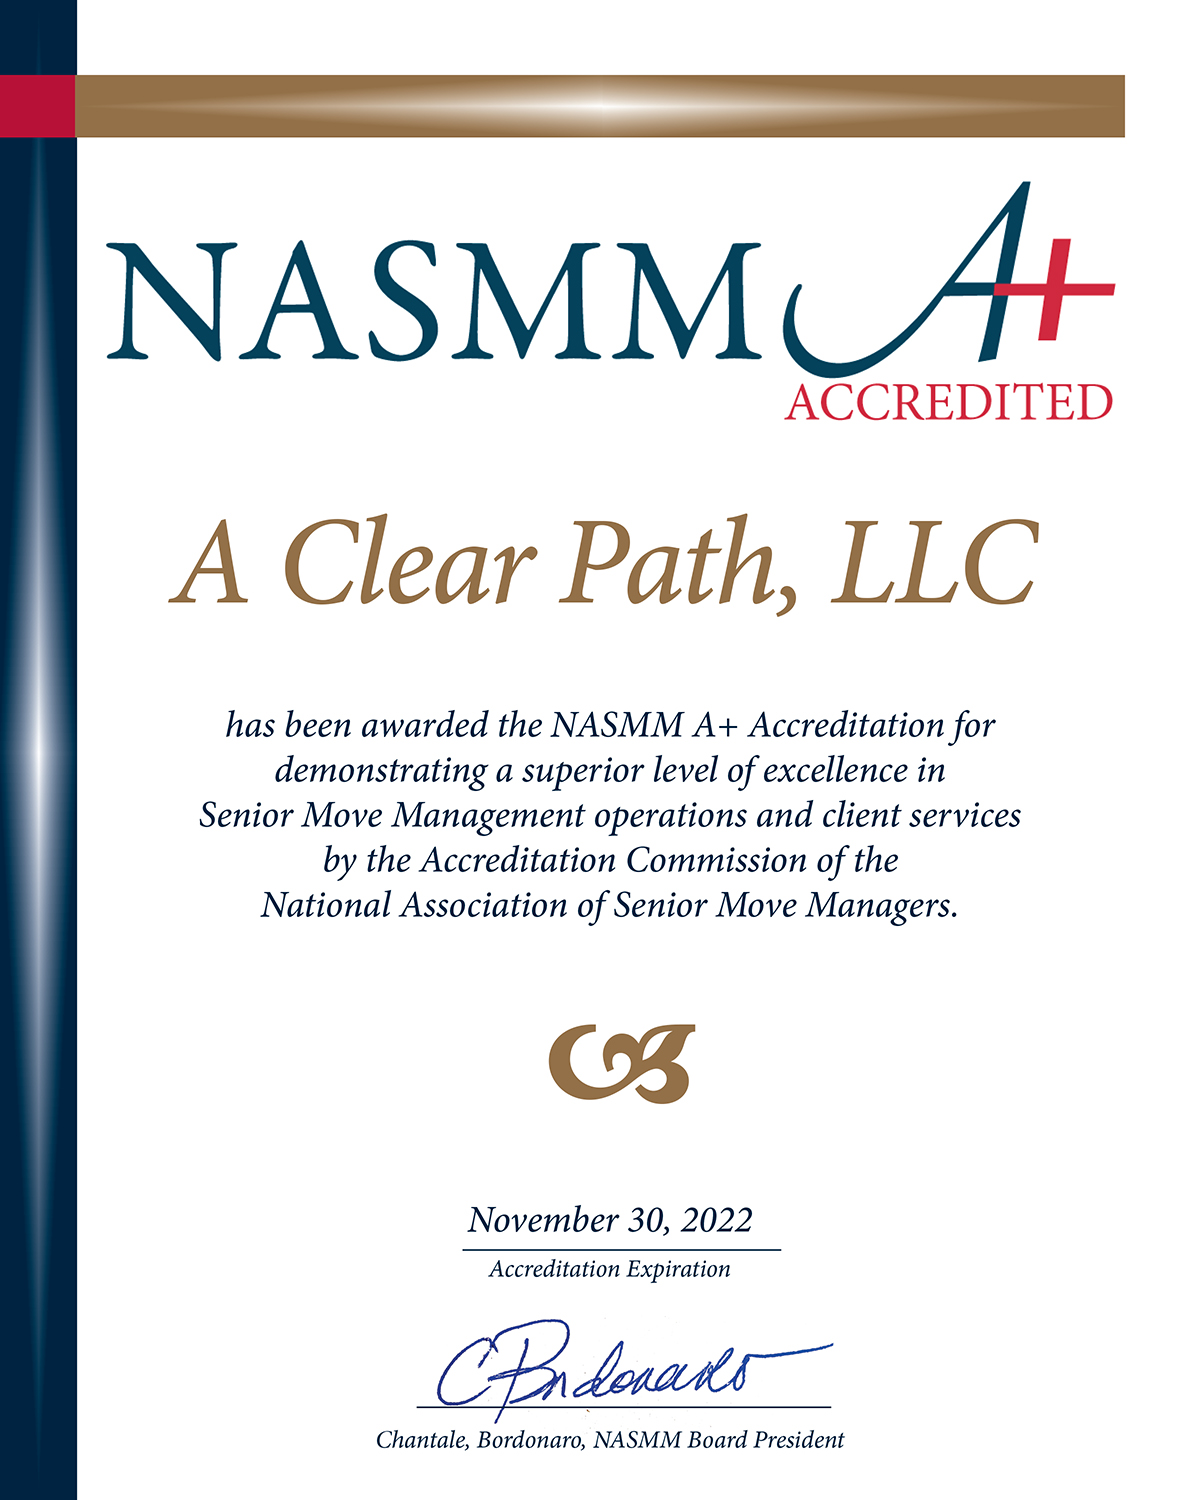 NASMM A+ accreditation for demonstrating superior level of excellence in Sr. Move Management